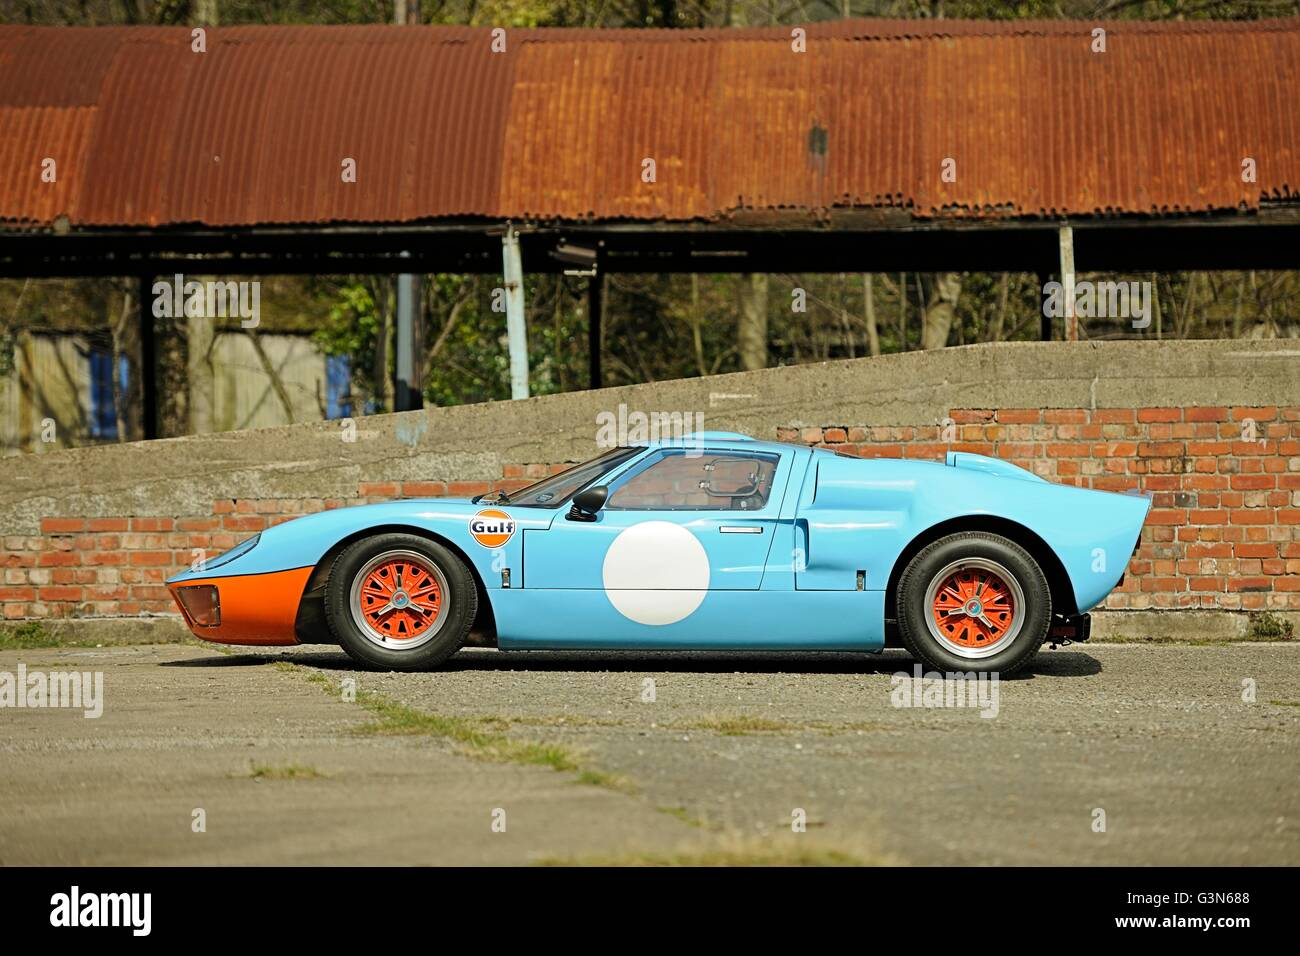 Side View Of Ford Gt Mkii In Gulf Racing Livery